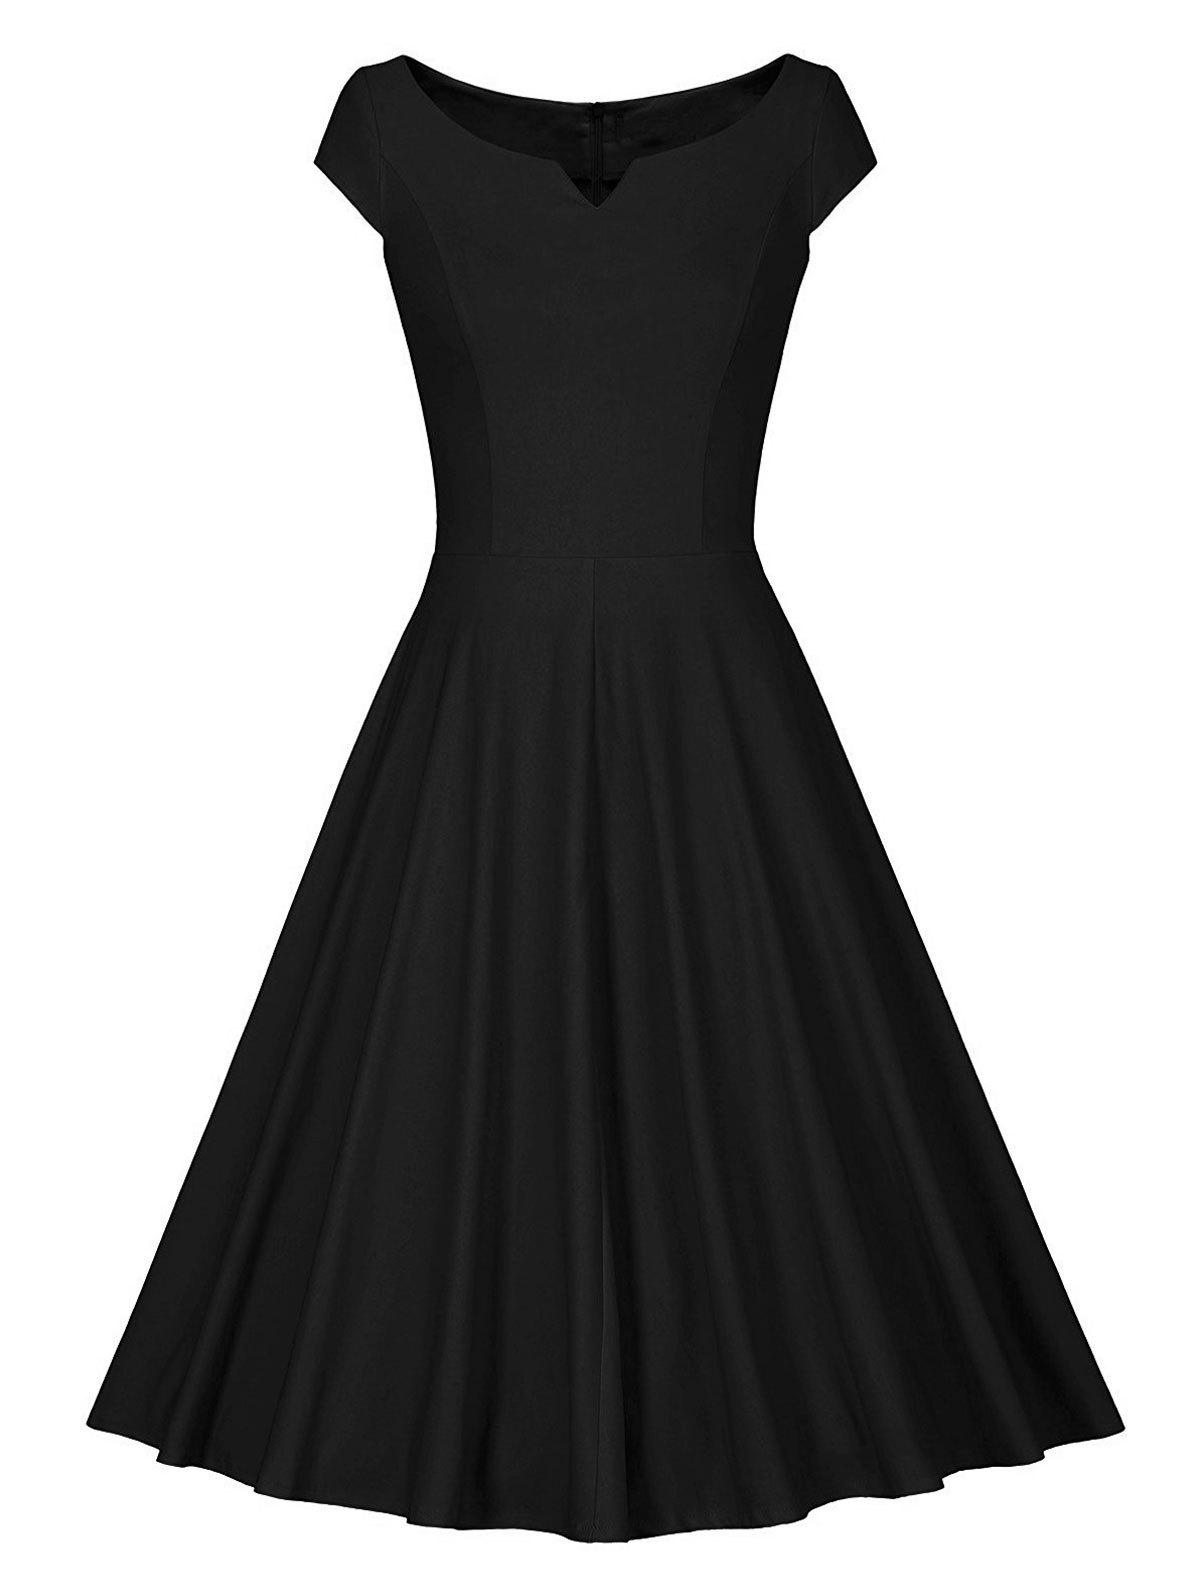 Retro V Neck Skater Fit and Flare Dress solid v neck slim skater dress